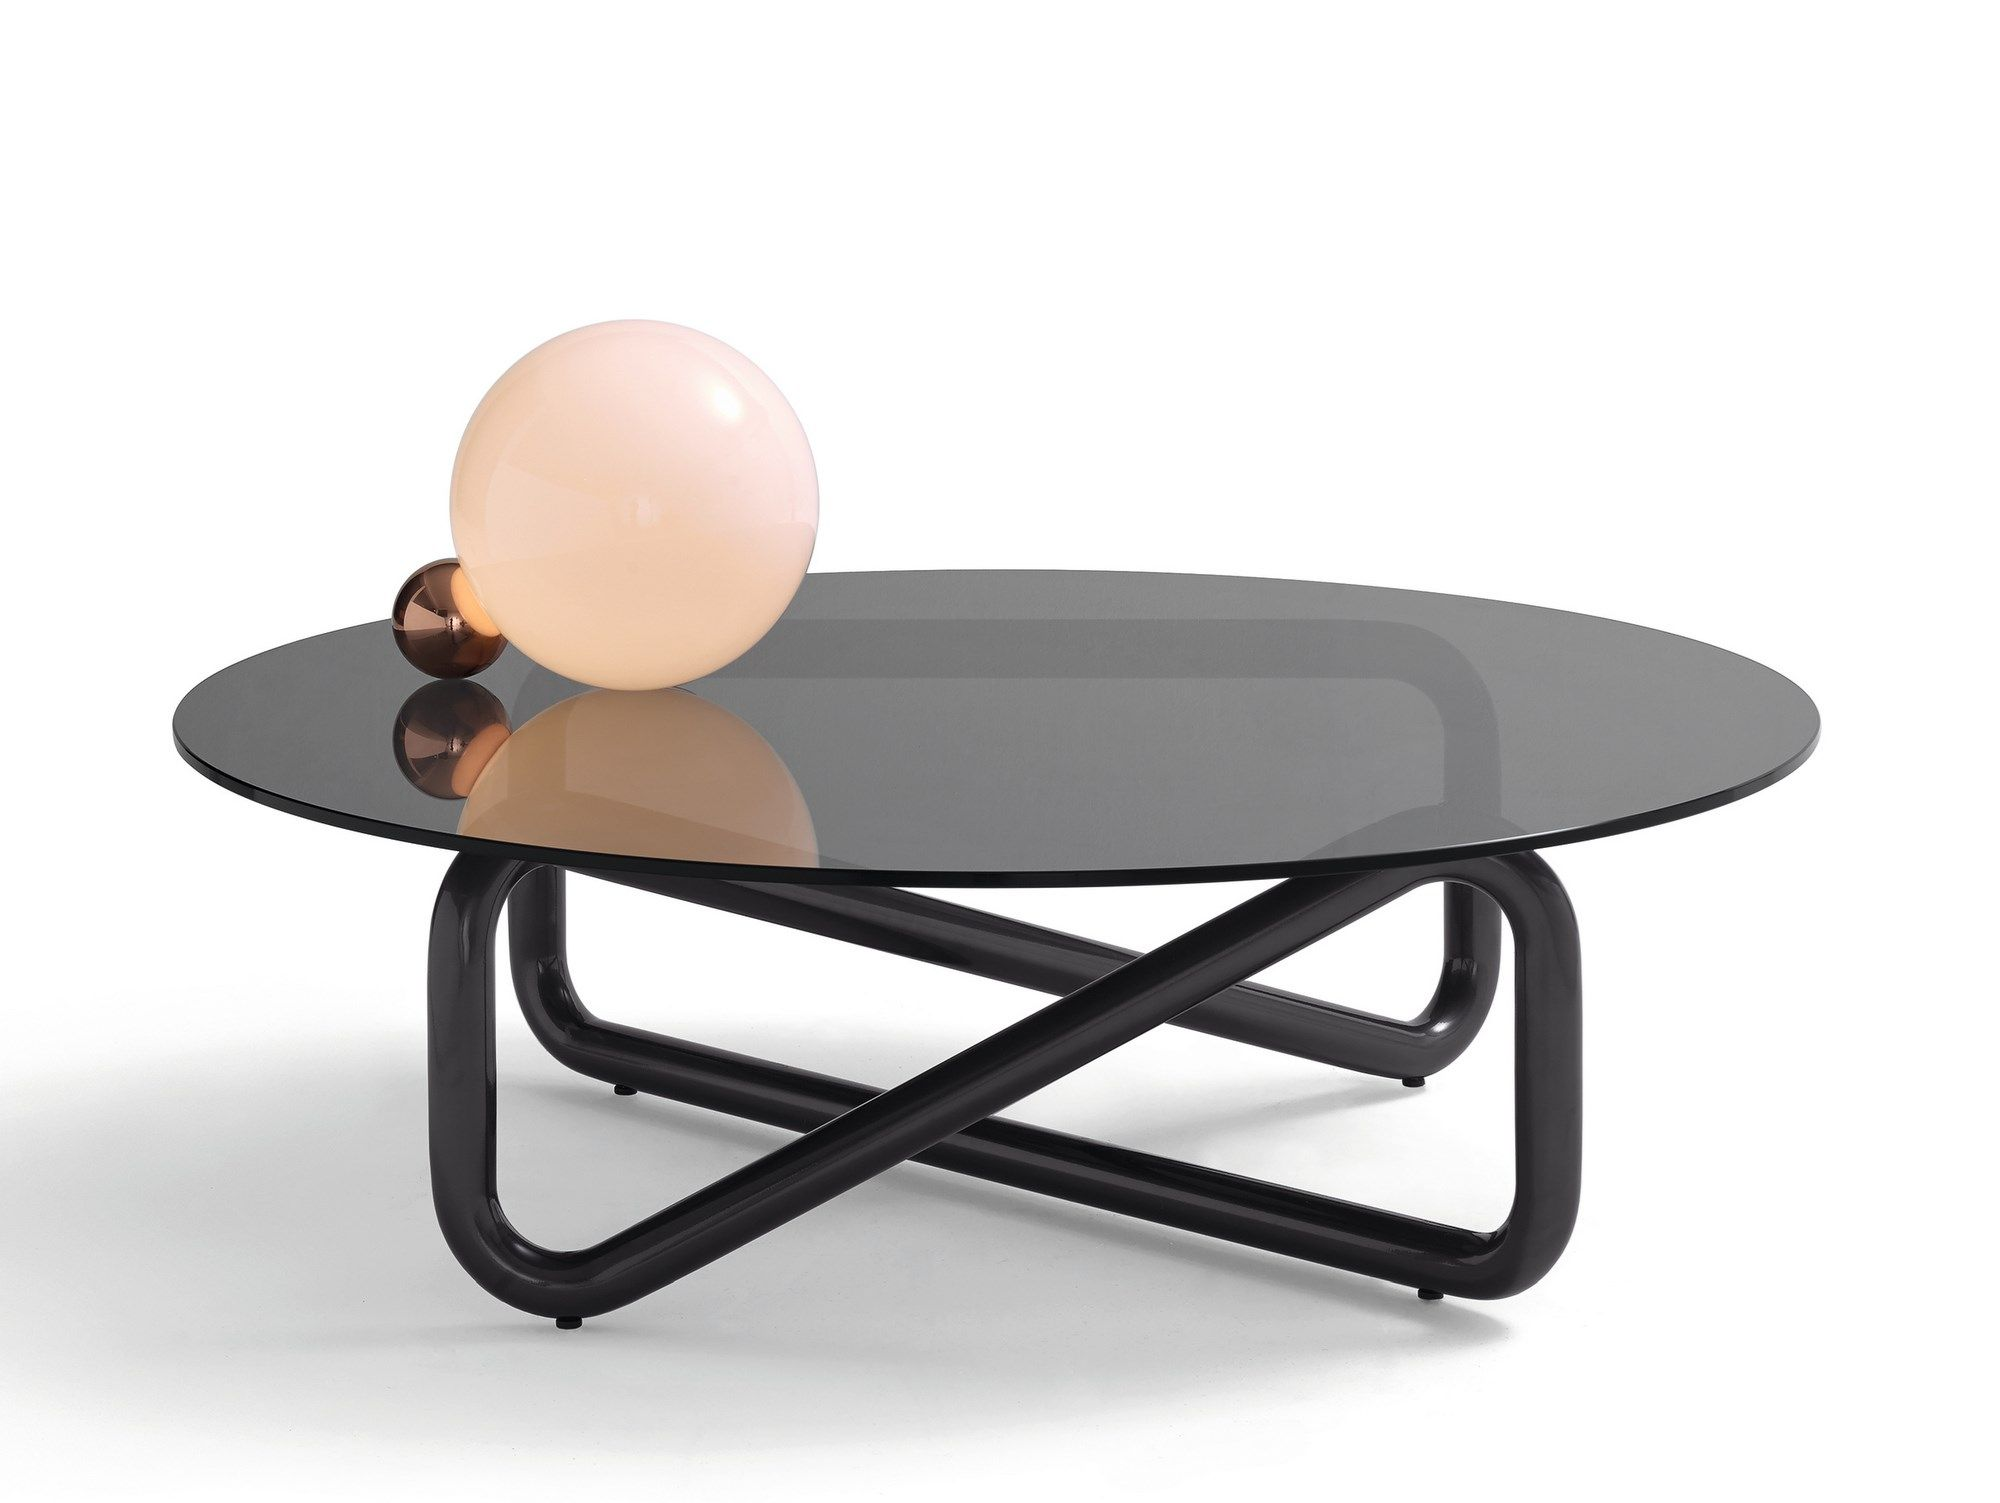 Arflex Infinity Low Glass And Steel Coffee Table For Living Room Design By Claesson Koivisto Rune Coffee Table Design Coffee Table Dining Table Decor [ 1503 x 2000 Pixel ]